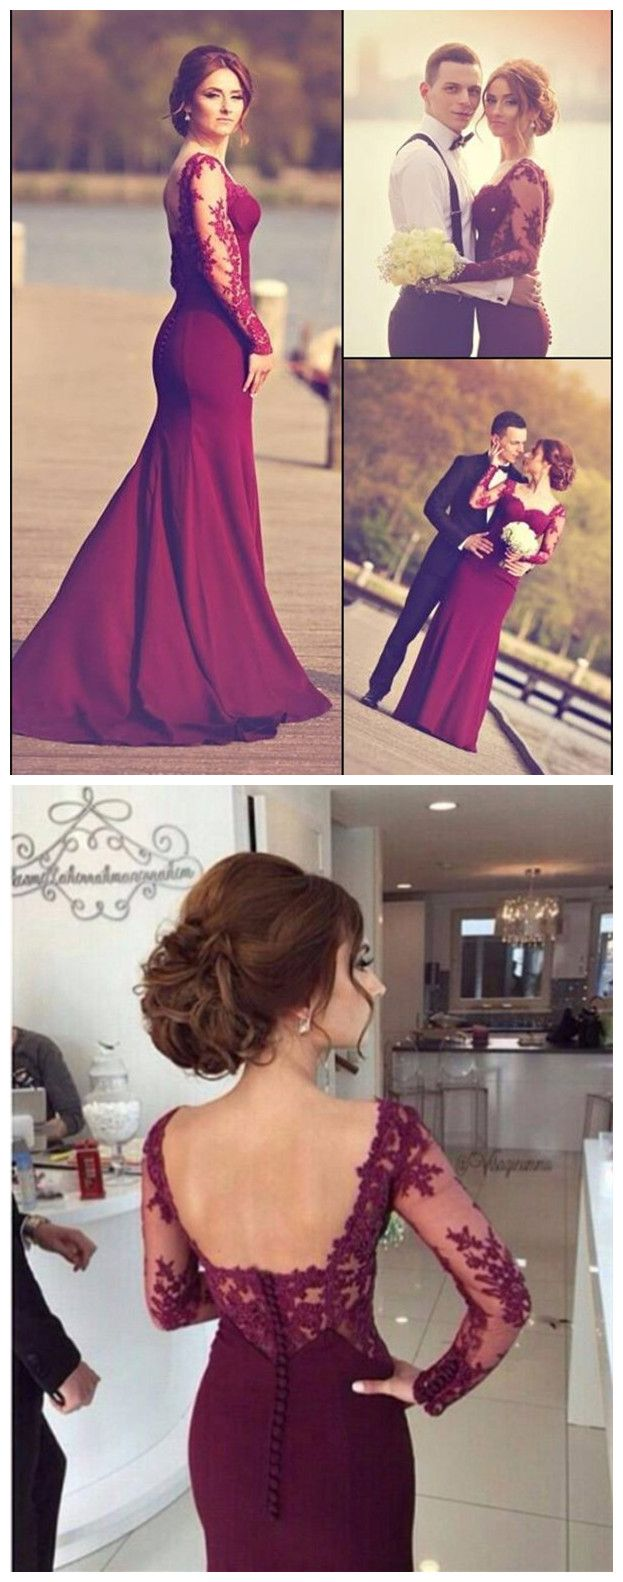 Hairstyles 2018 fall long dresses